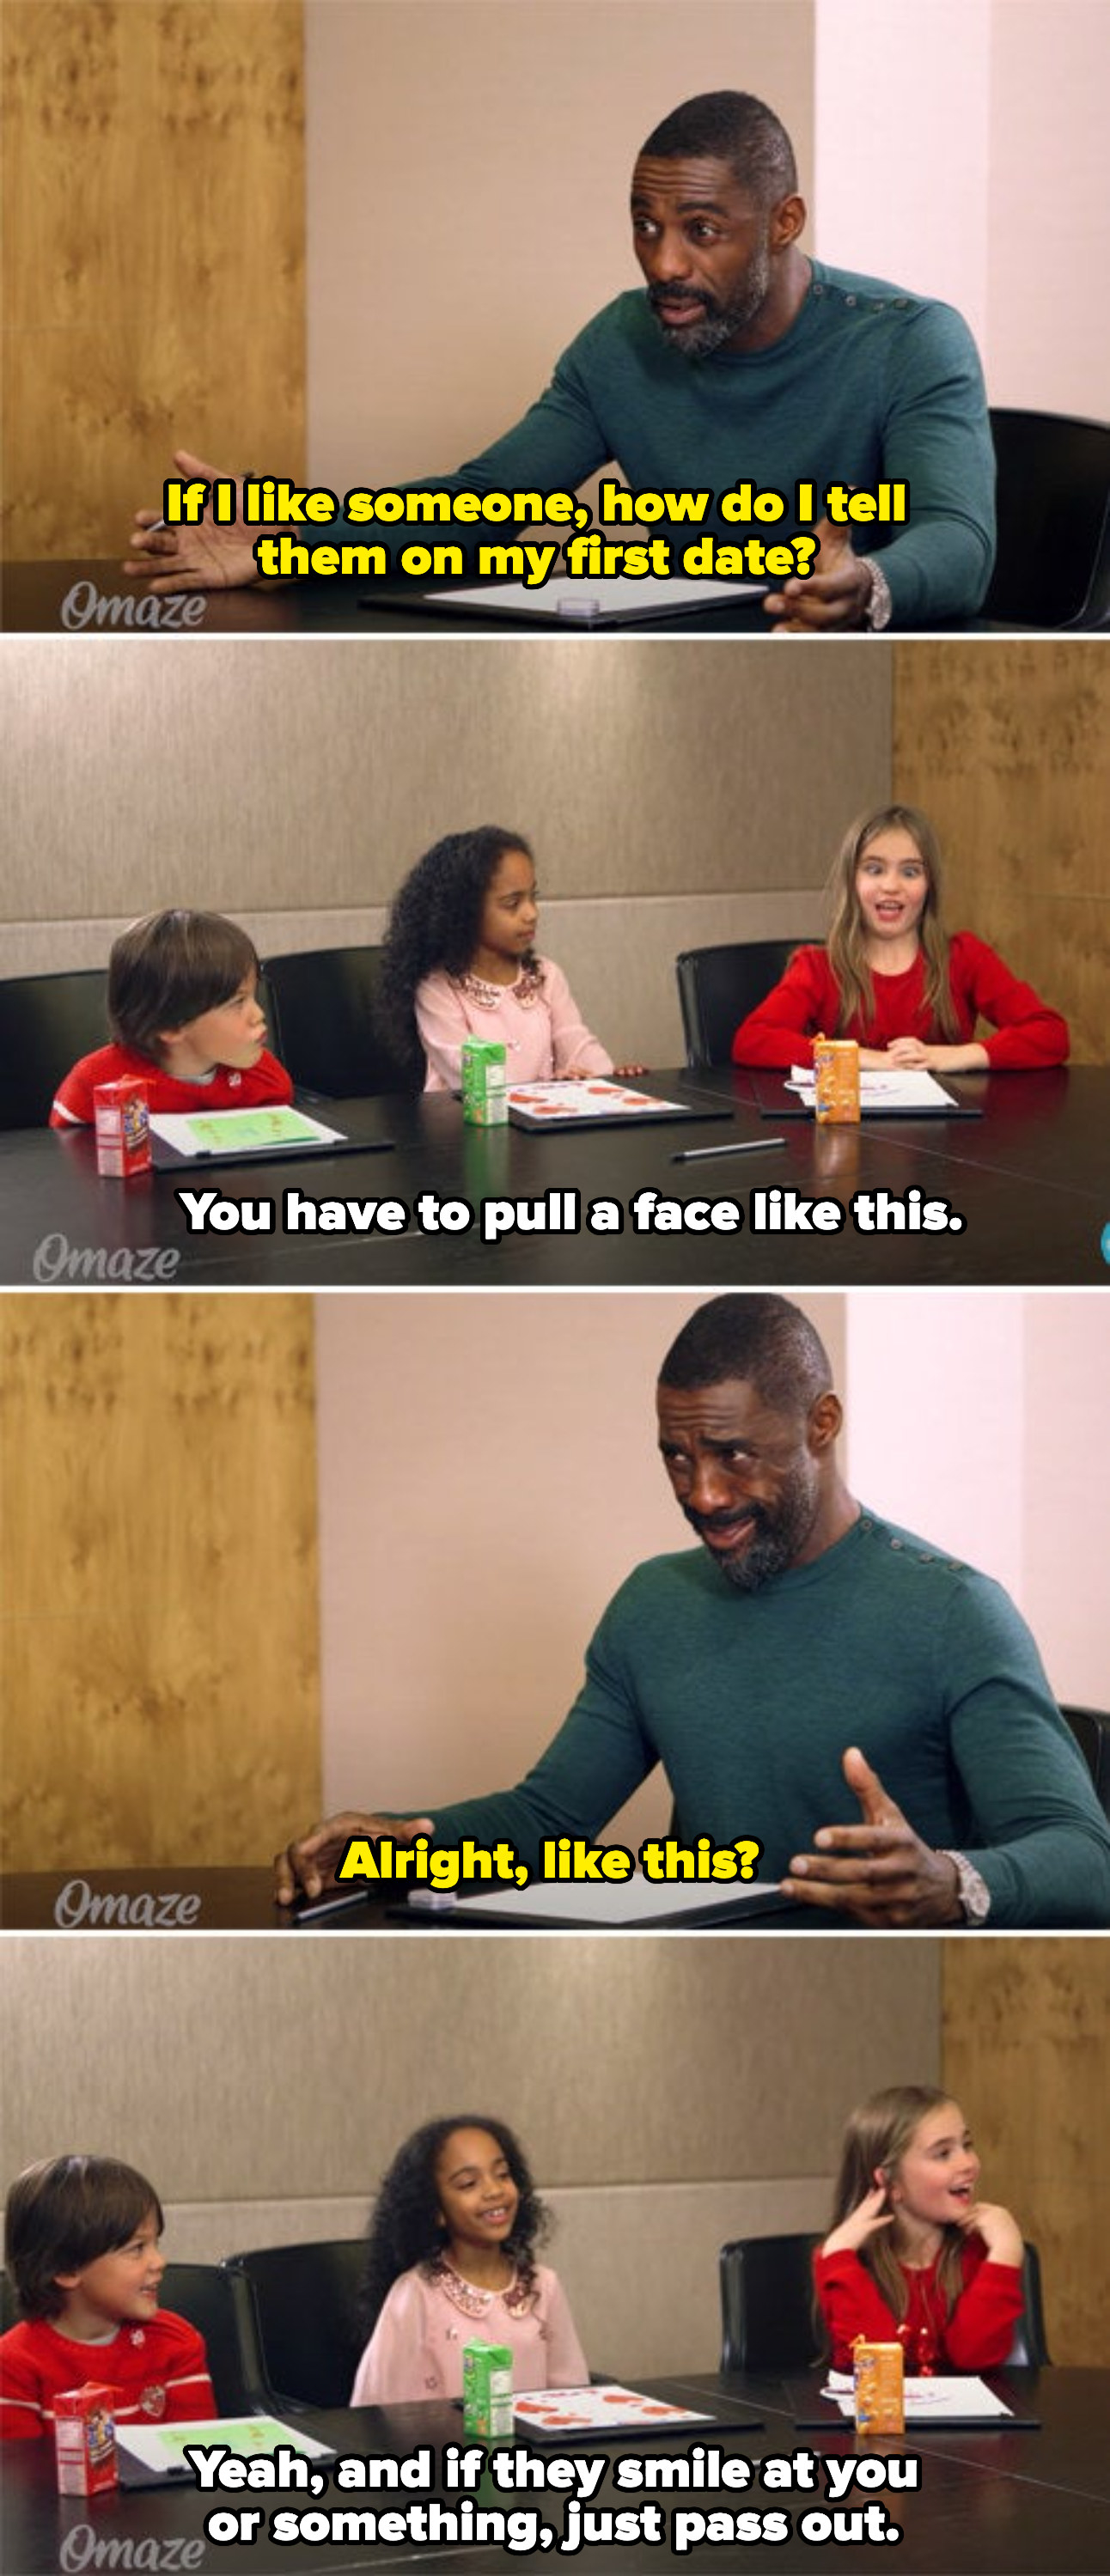 Idris asking kids how to tell a girl on a date that he likes her, a kid saying to make a face, Idris repeating the face, and the kid telling him if they smile at him, just pass out